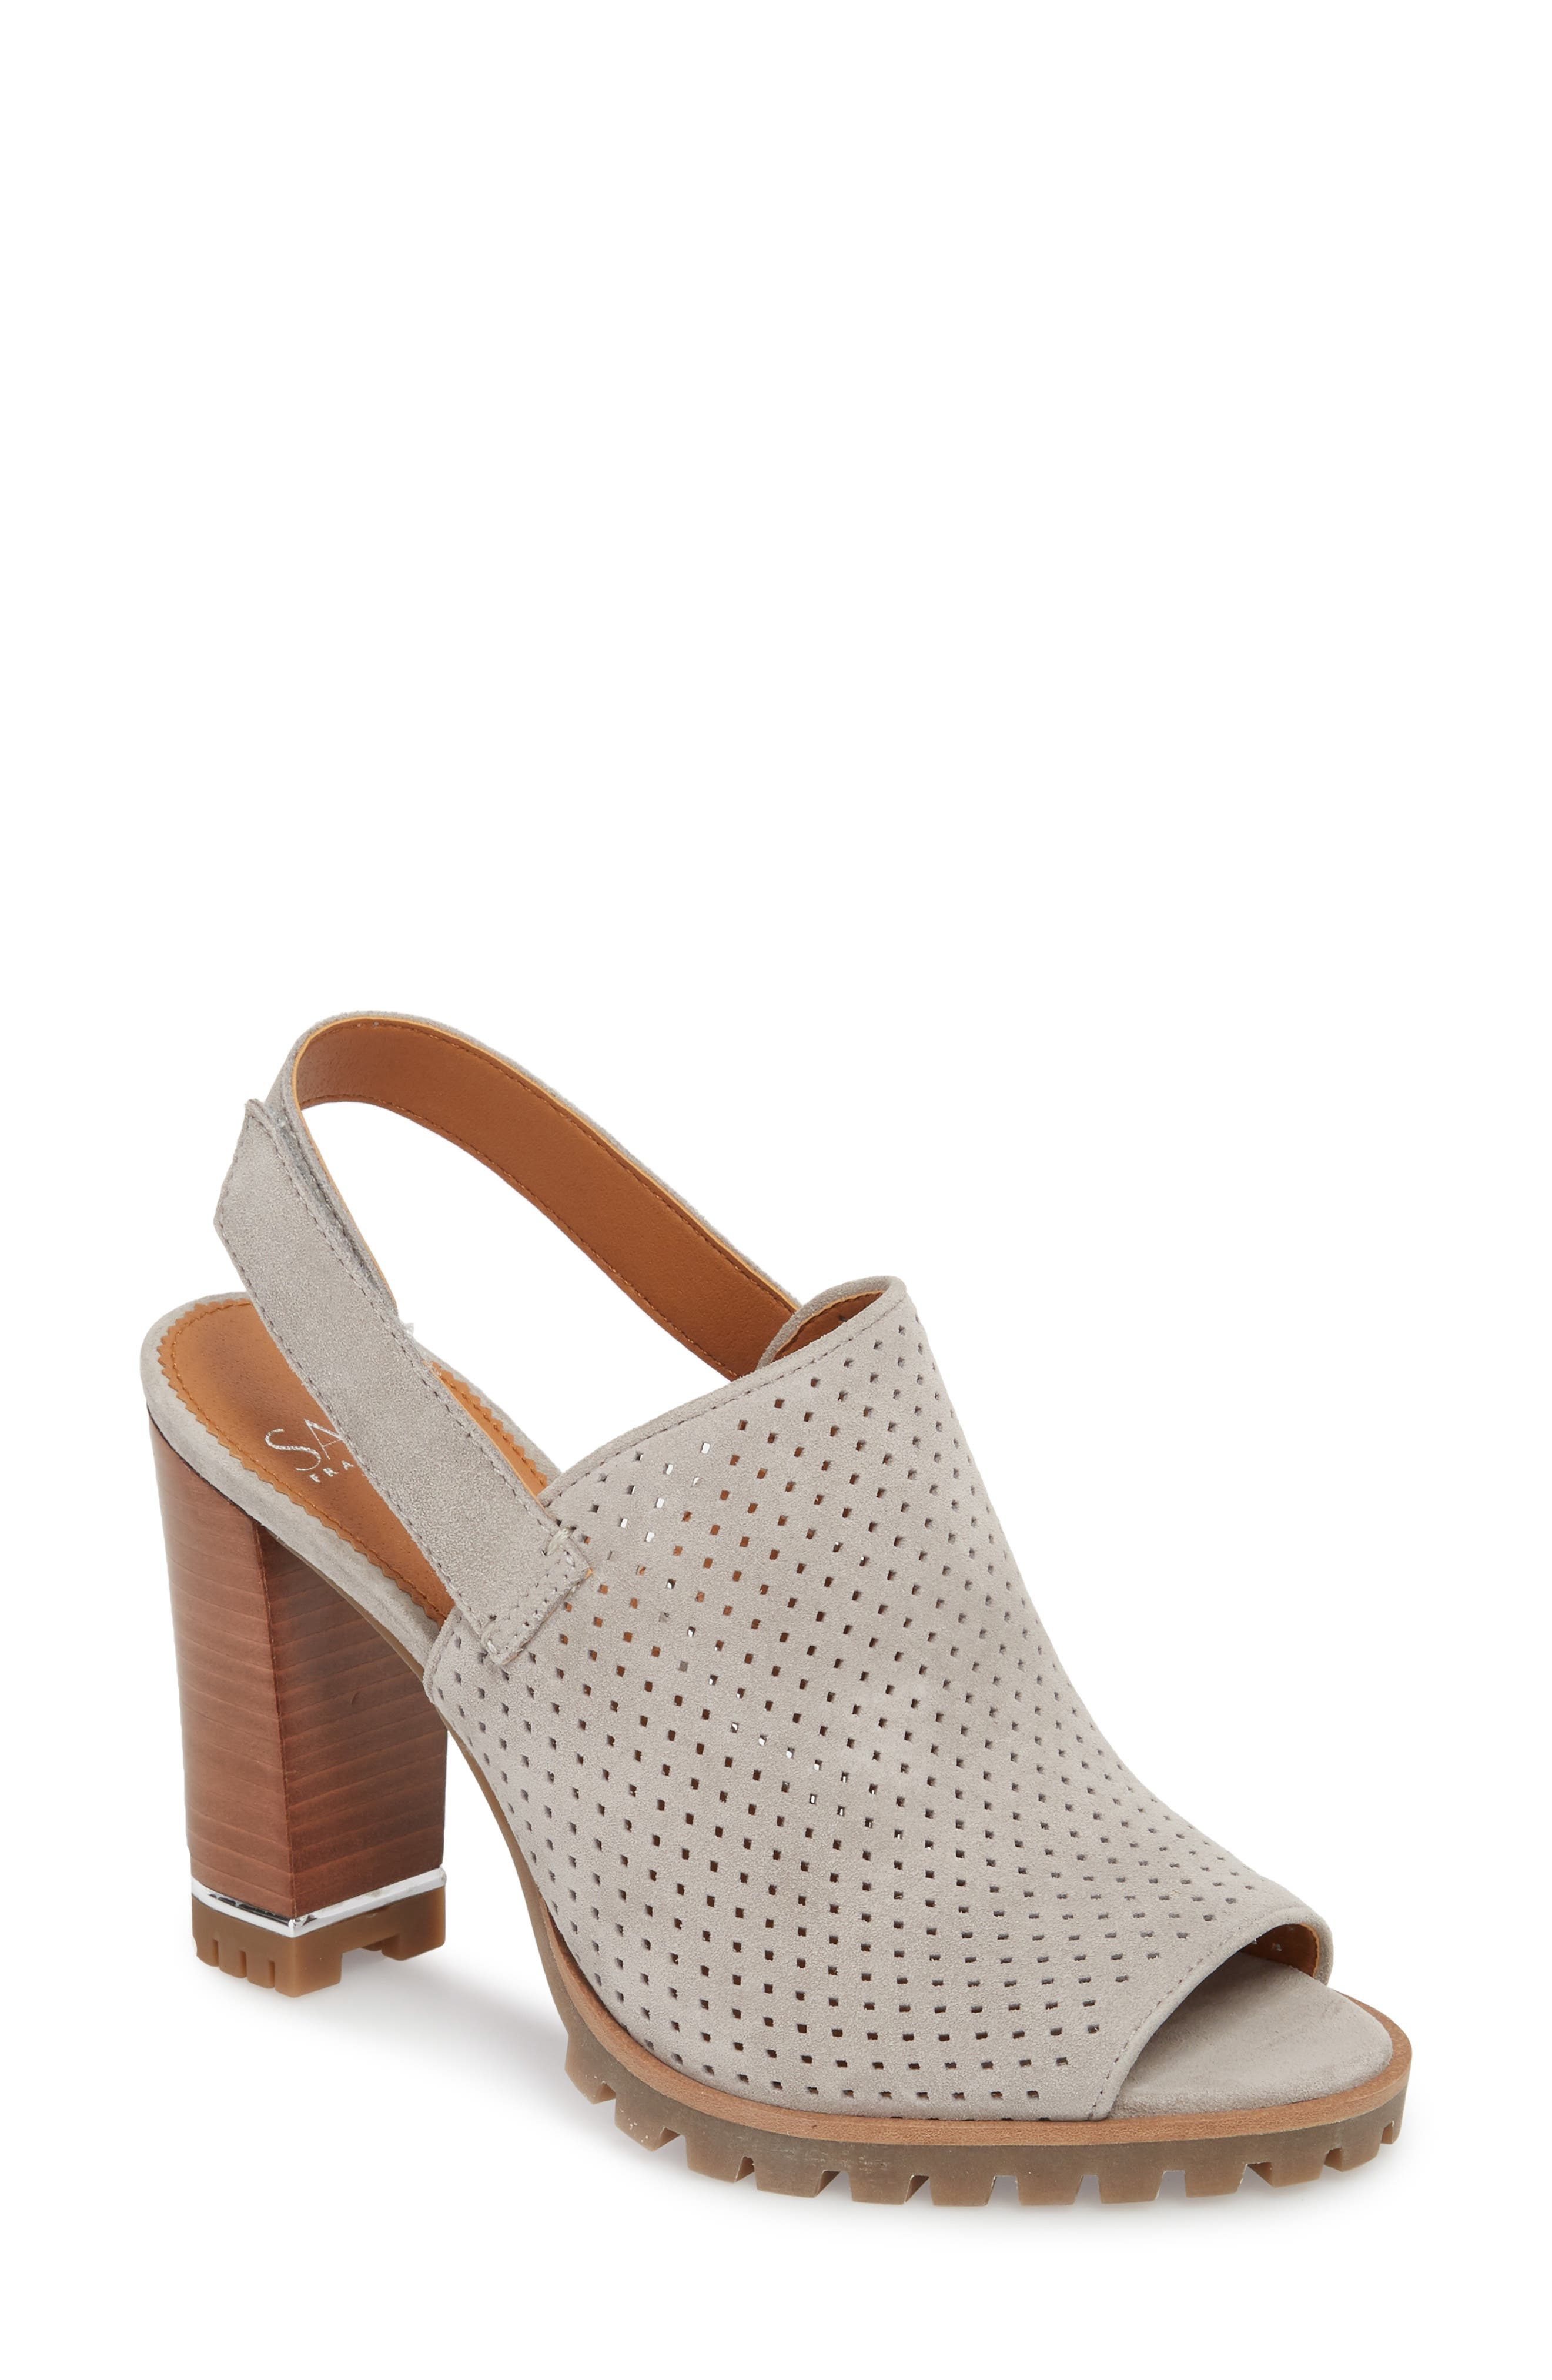 Analise Sandal,                             Main thumbnail 1, color,                             GREY SUEDE